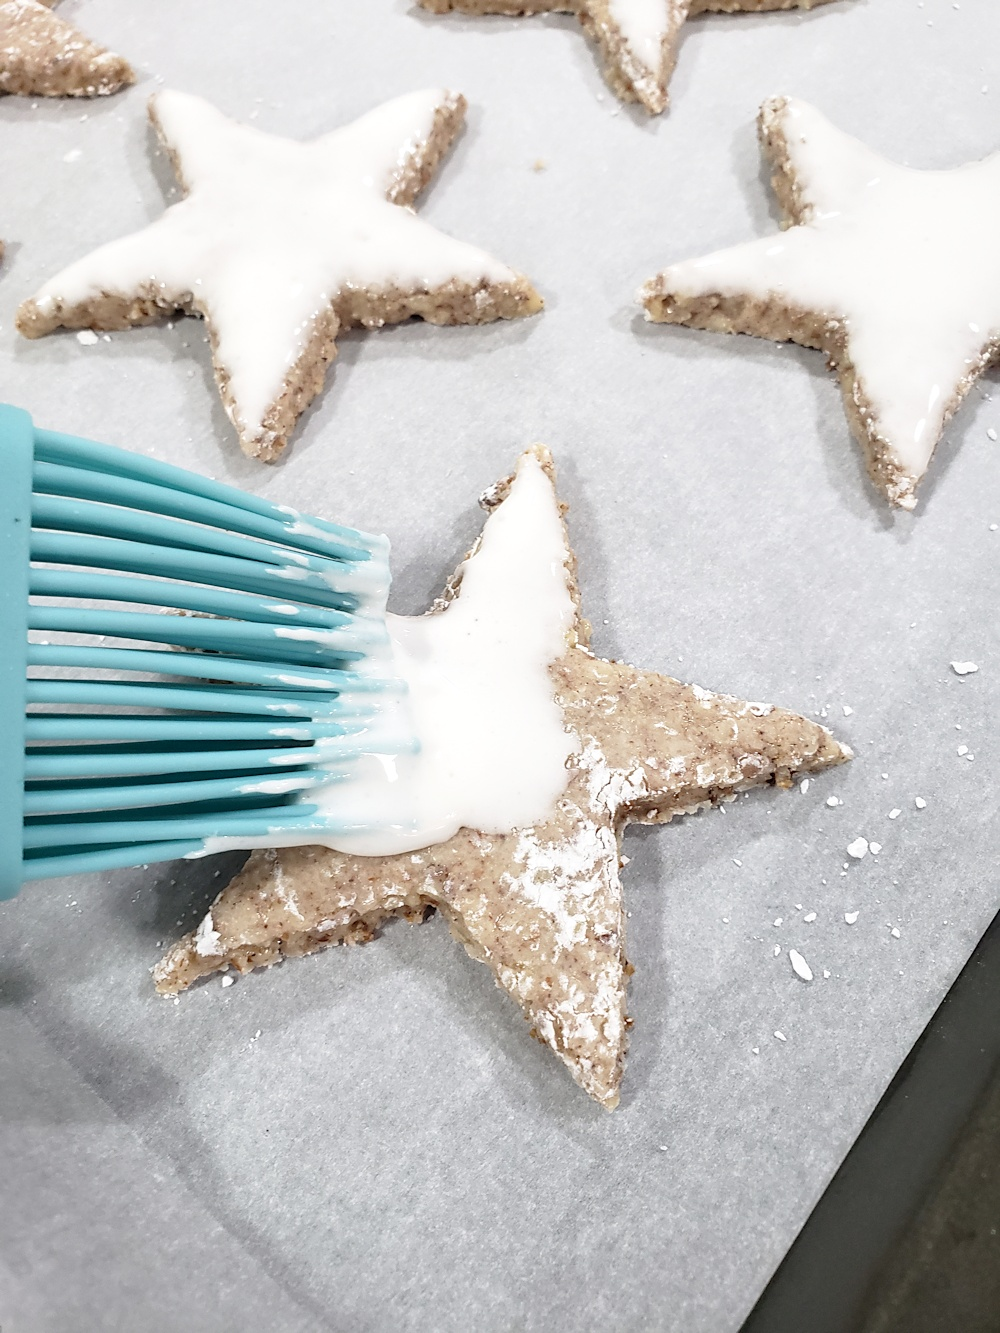 Frosting cookies with a meringue topping.